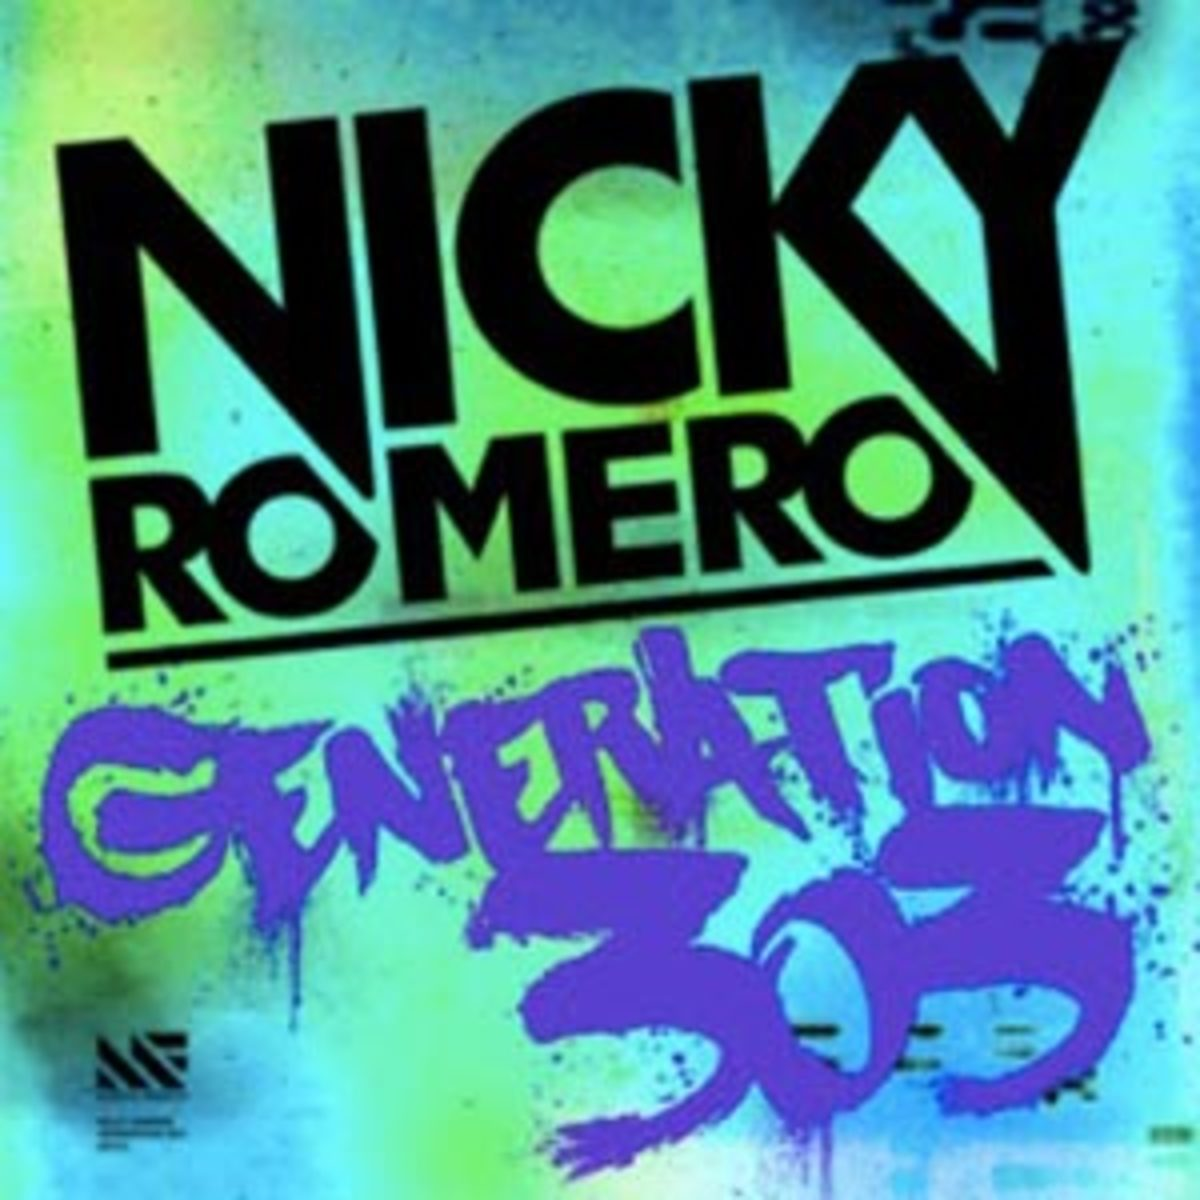 Nicky-Romero-Generation-303